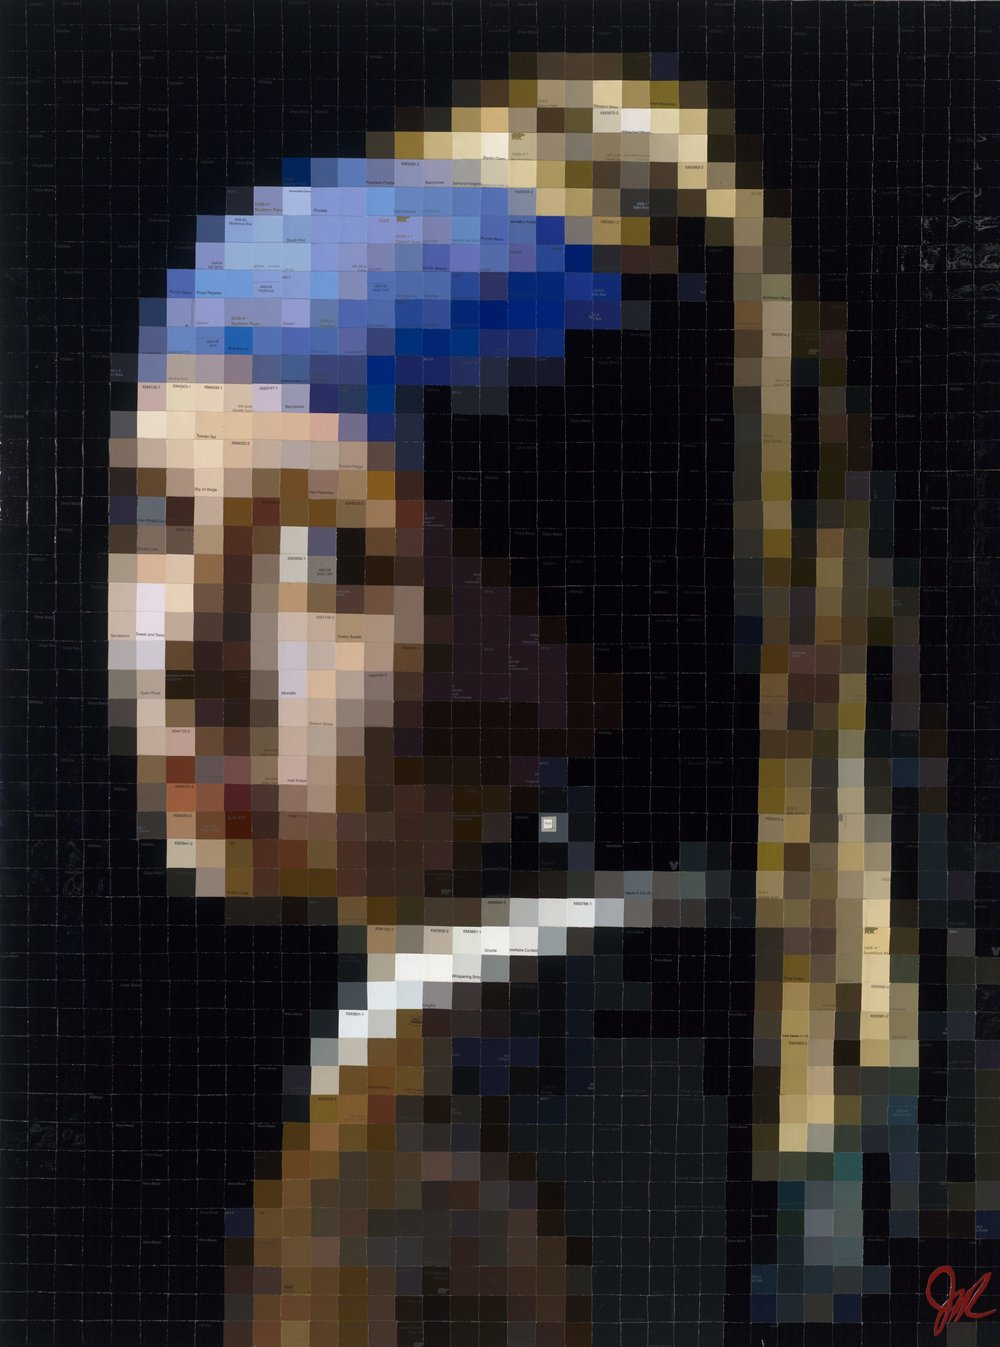 SOLD /// Girl with the Pearl Earring [Vermeer] • 48 X 36 • paint swatch (paper) collage on panel